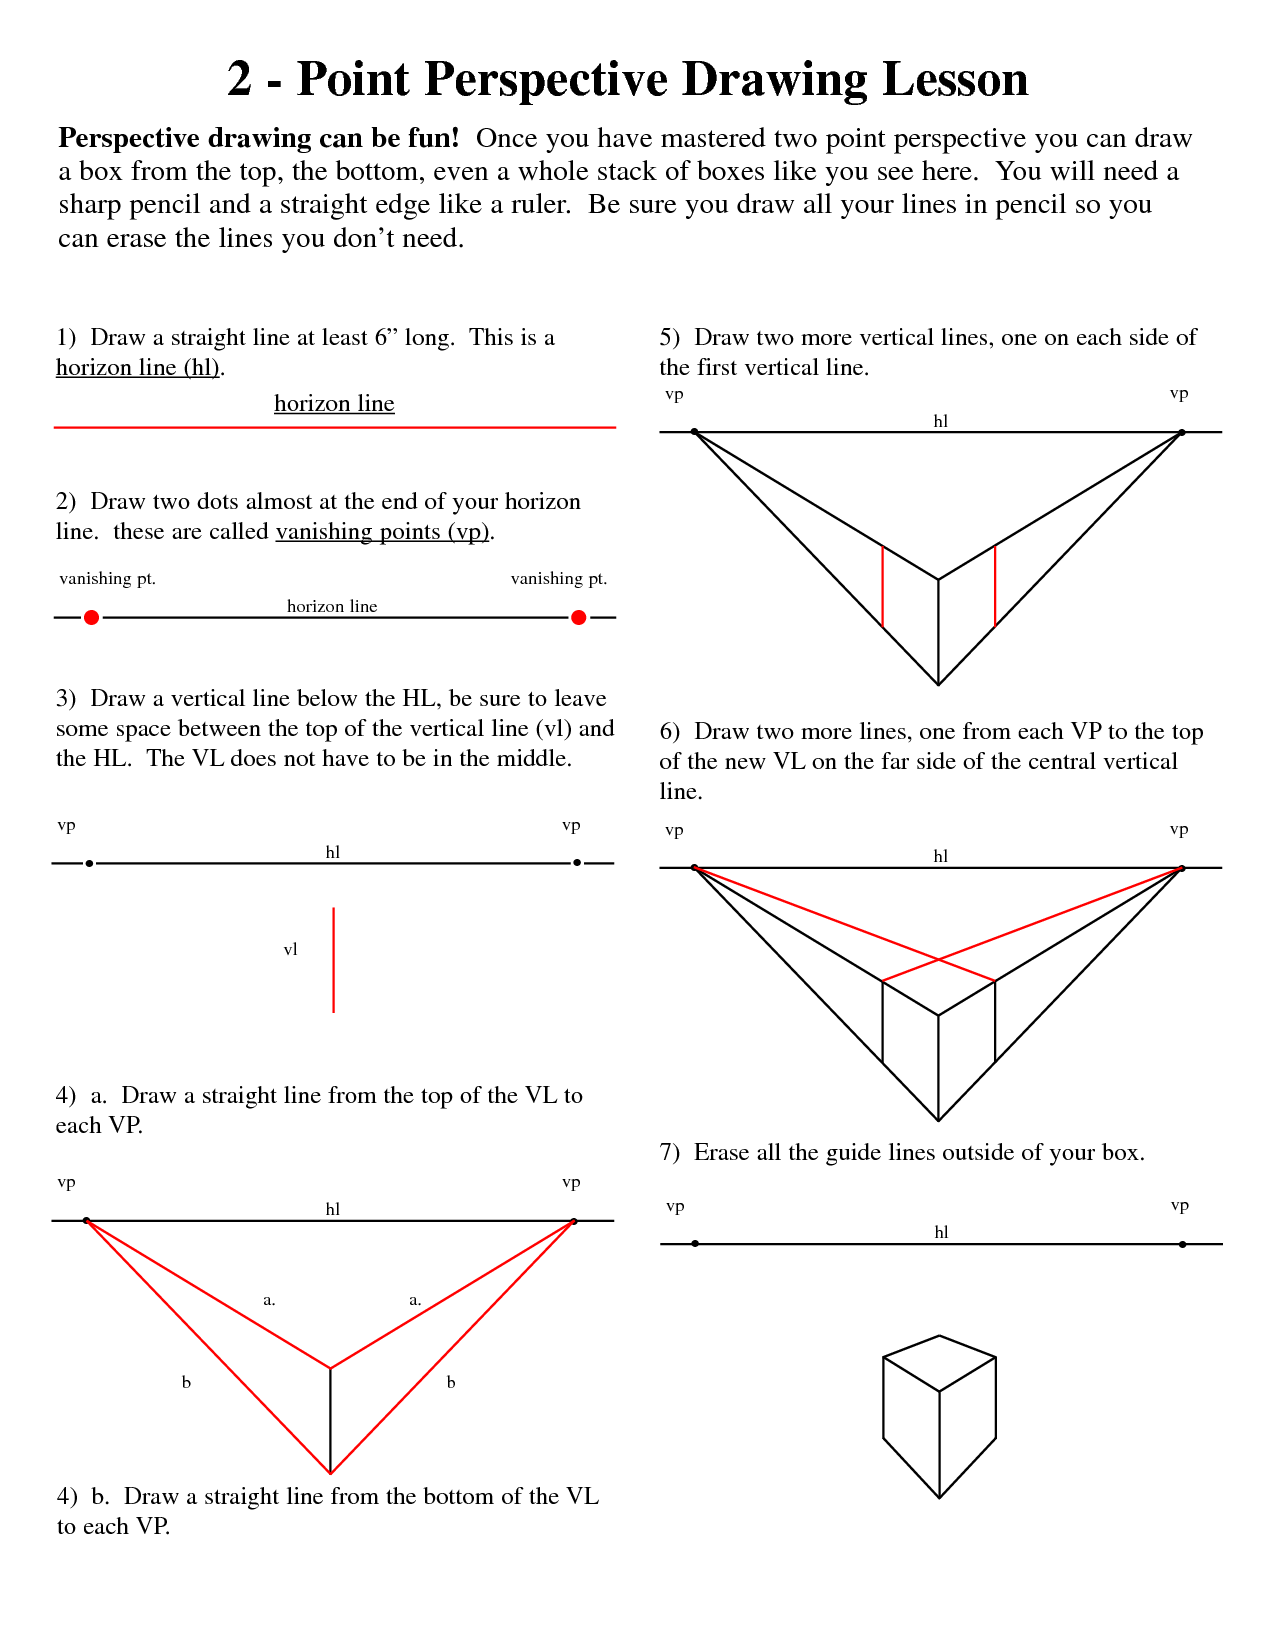 Worksheets One Point Perspective Worksheet 2 point perspective lesson plan template two is a slight variation of one drawing you still have horizon line vanishing point